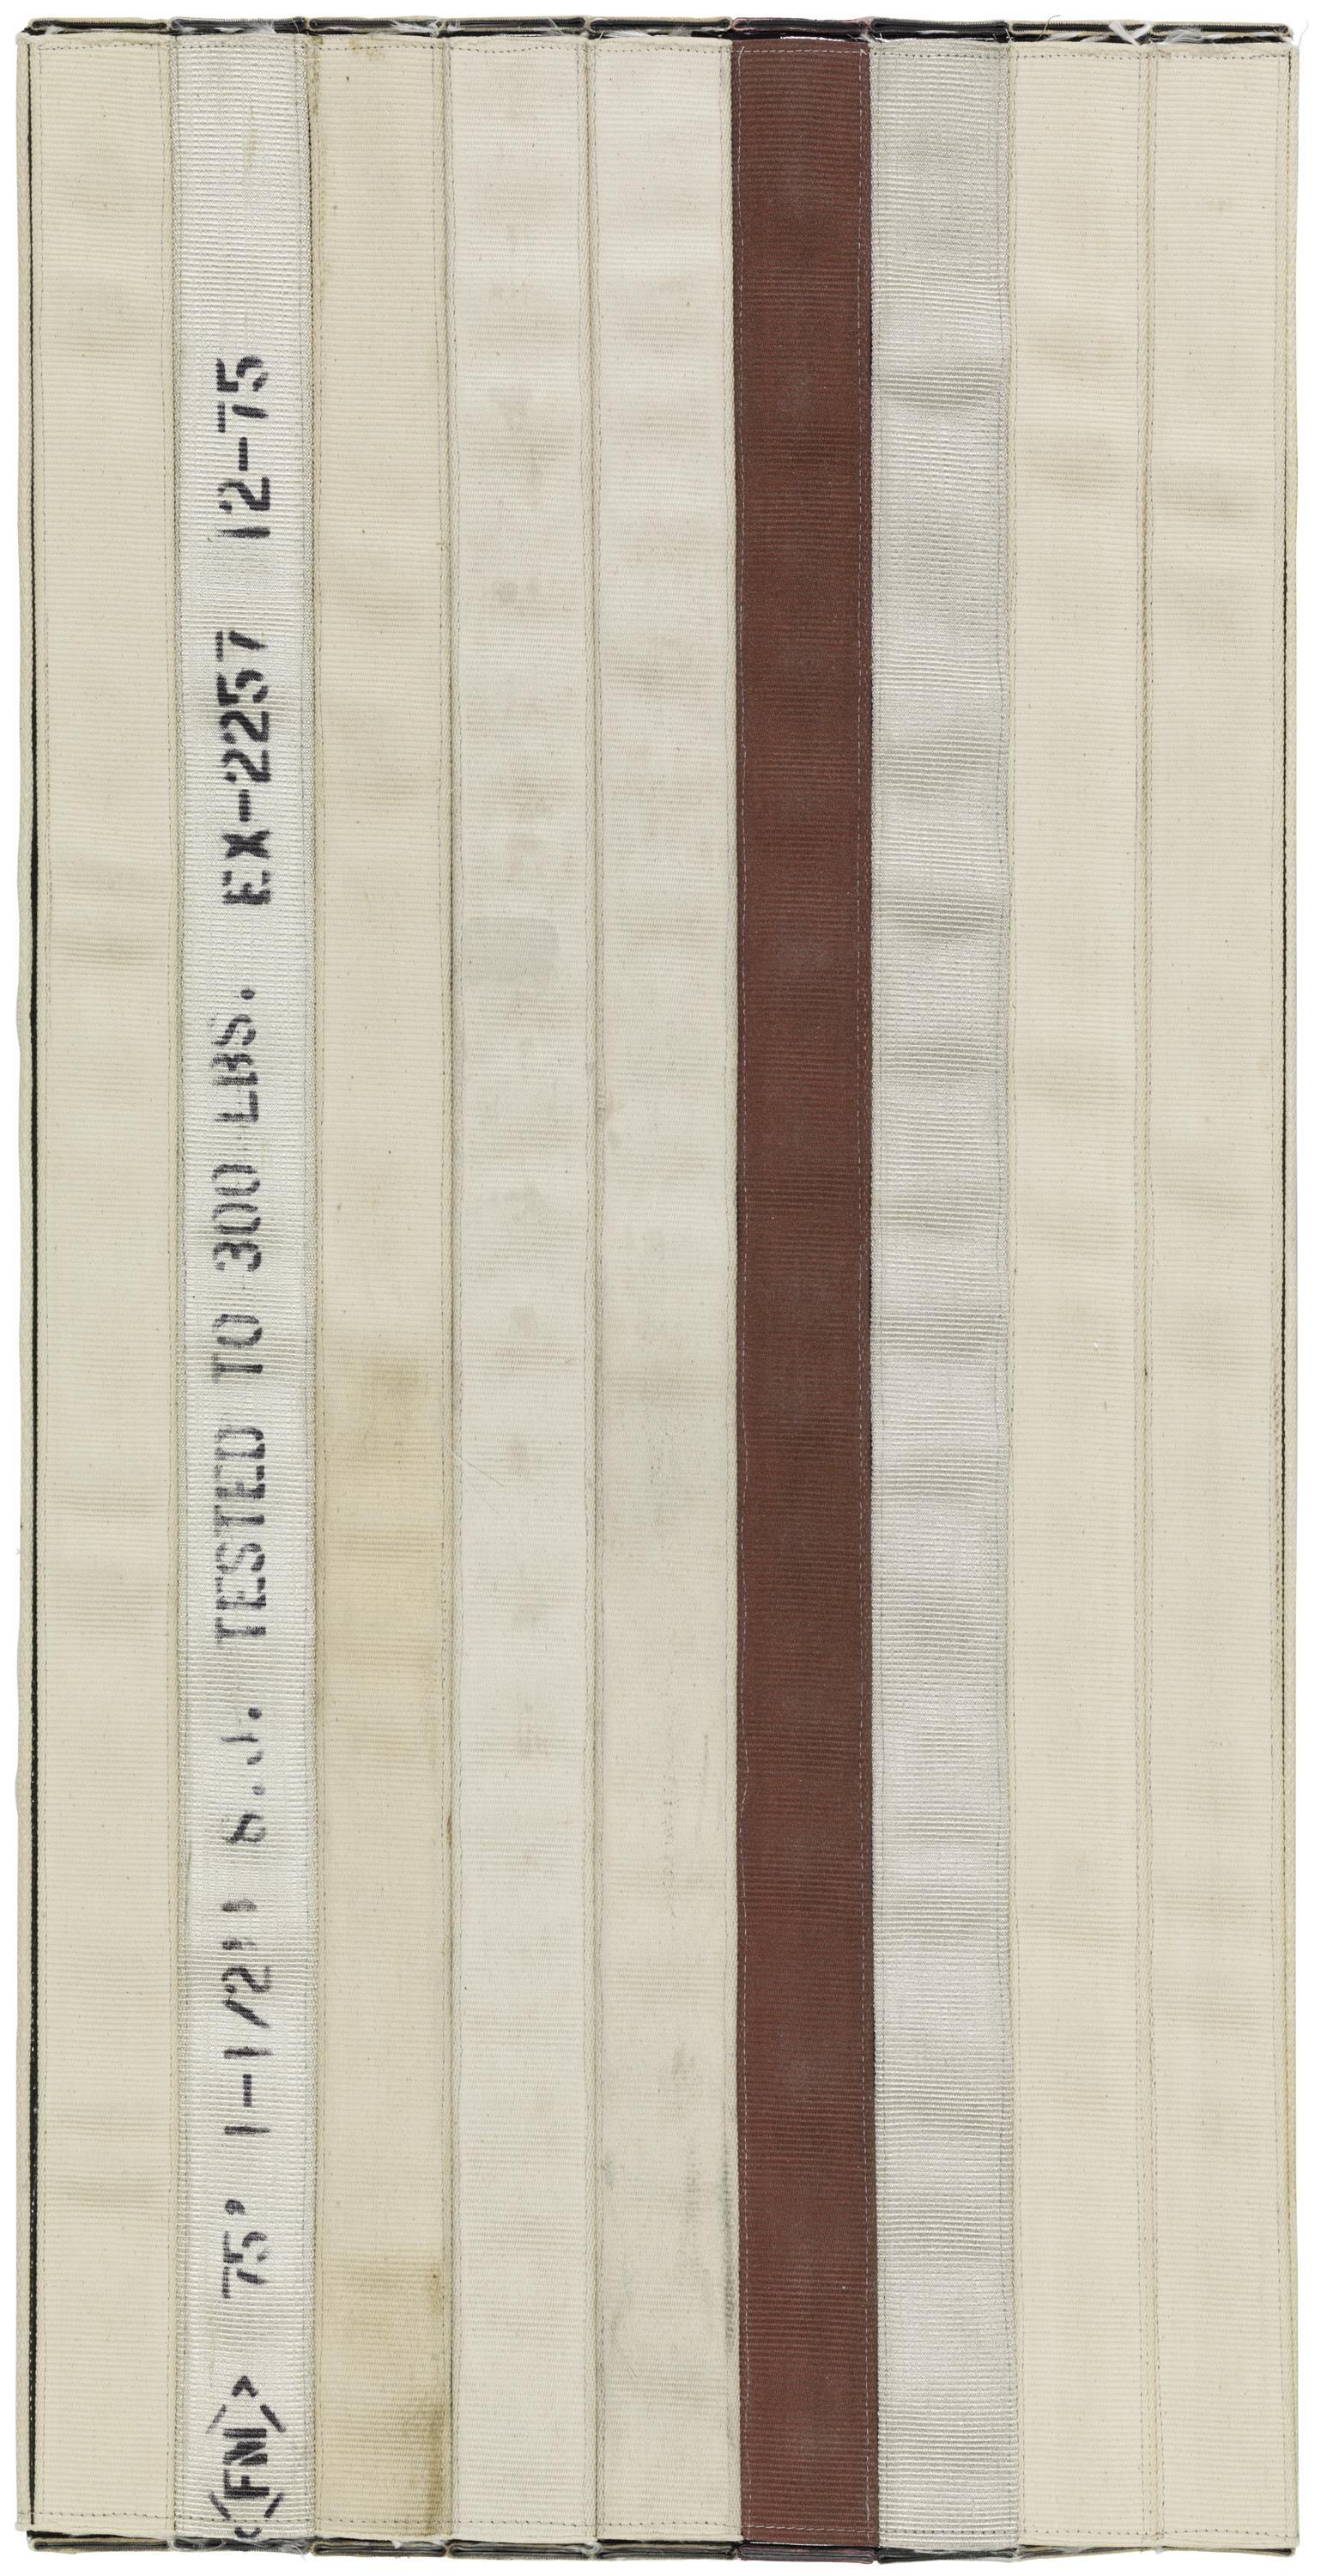 """A vertically oriented artwork appears to consist of seatbelt-like strips of fabric stitched together. One strip shows black text including """"TESTED TO 300 LBS."""""""